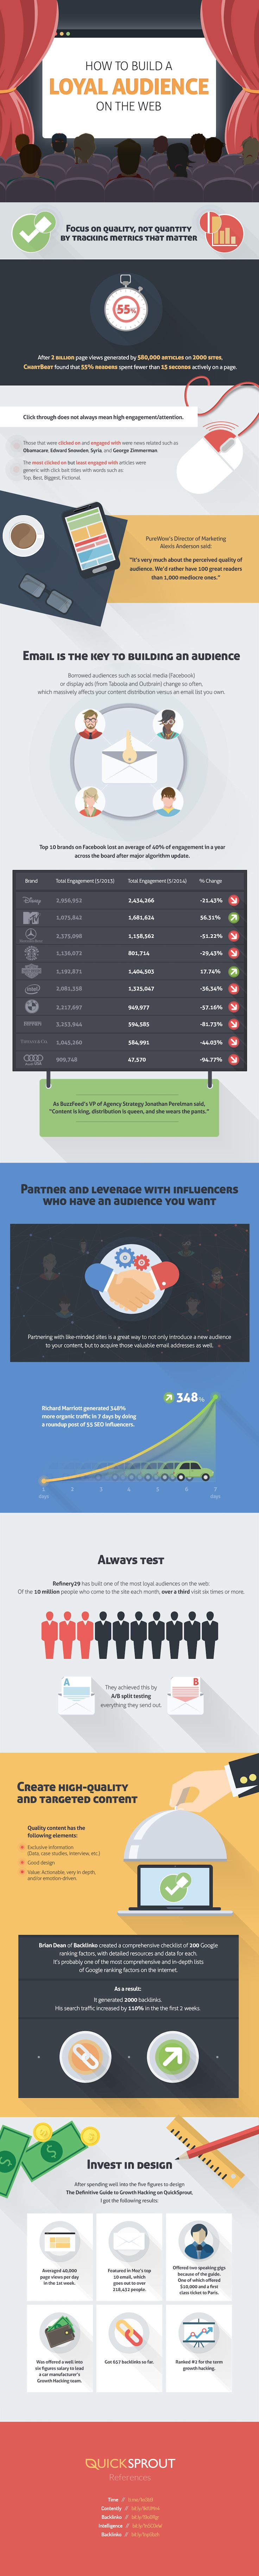 How to Build a Loyal Audience on the Web - Infographic